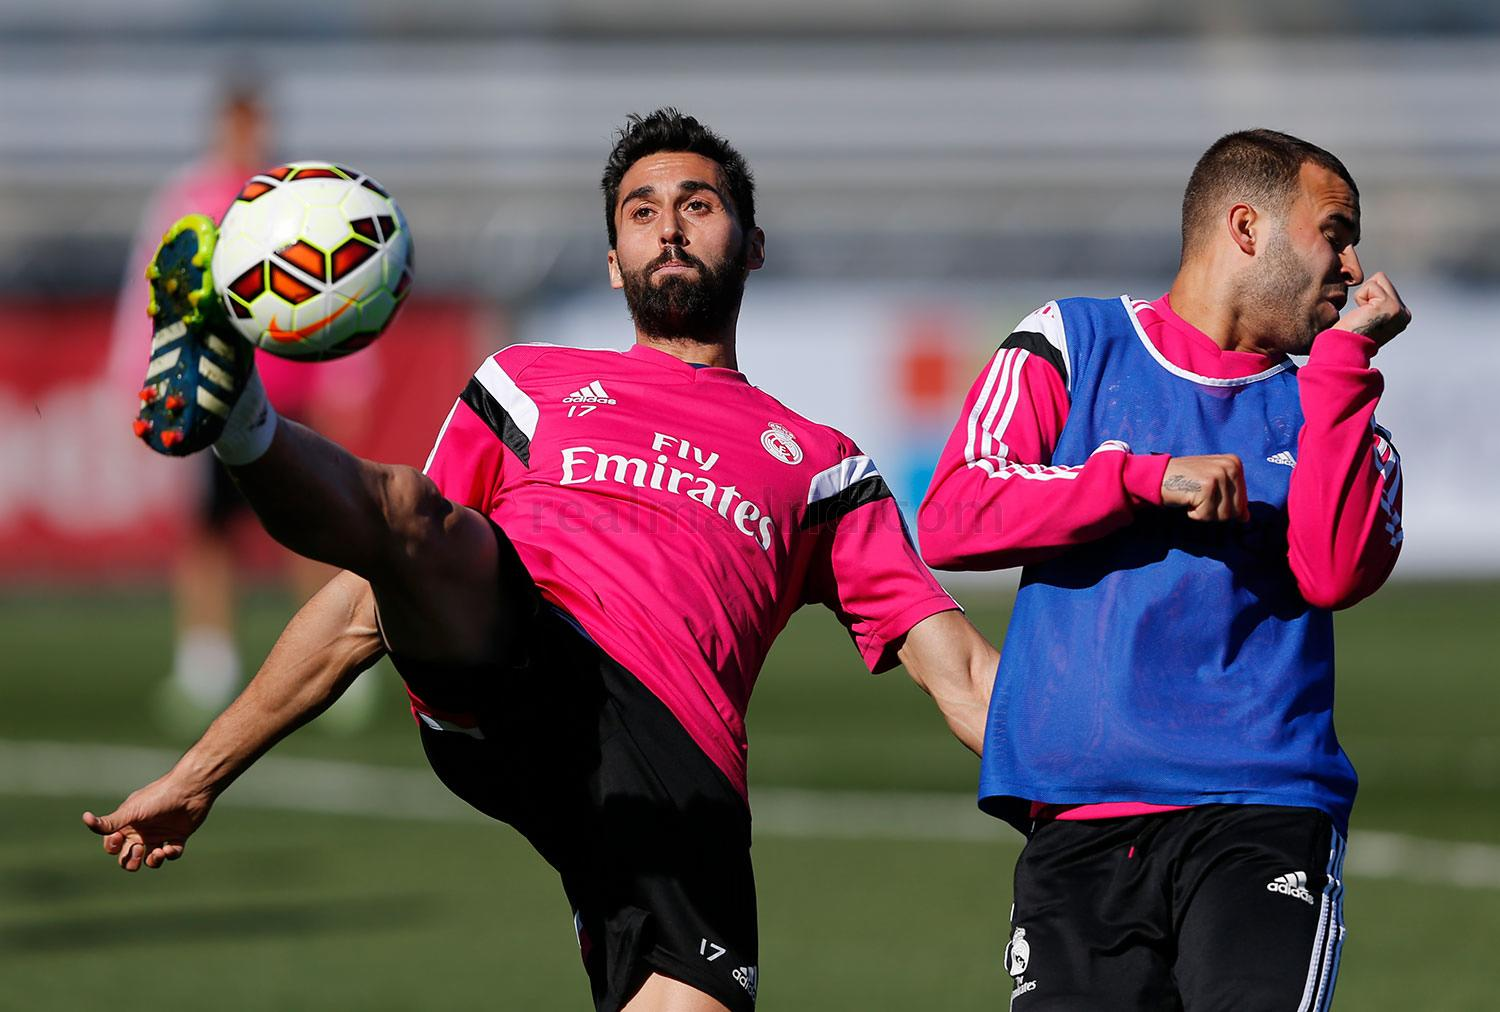 Real Madrid - Entrenamiento del Real Madrid - 04-03-2015